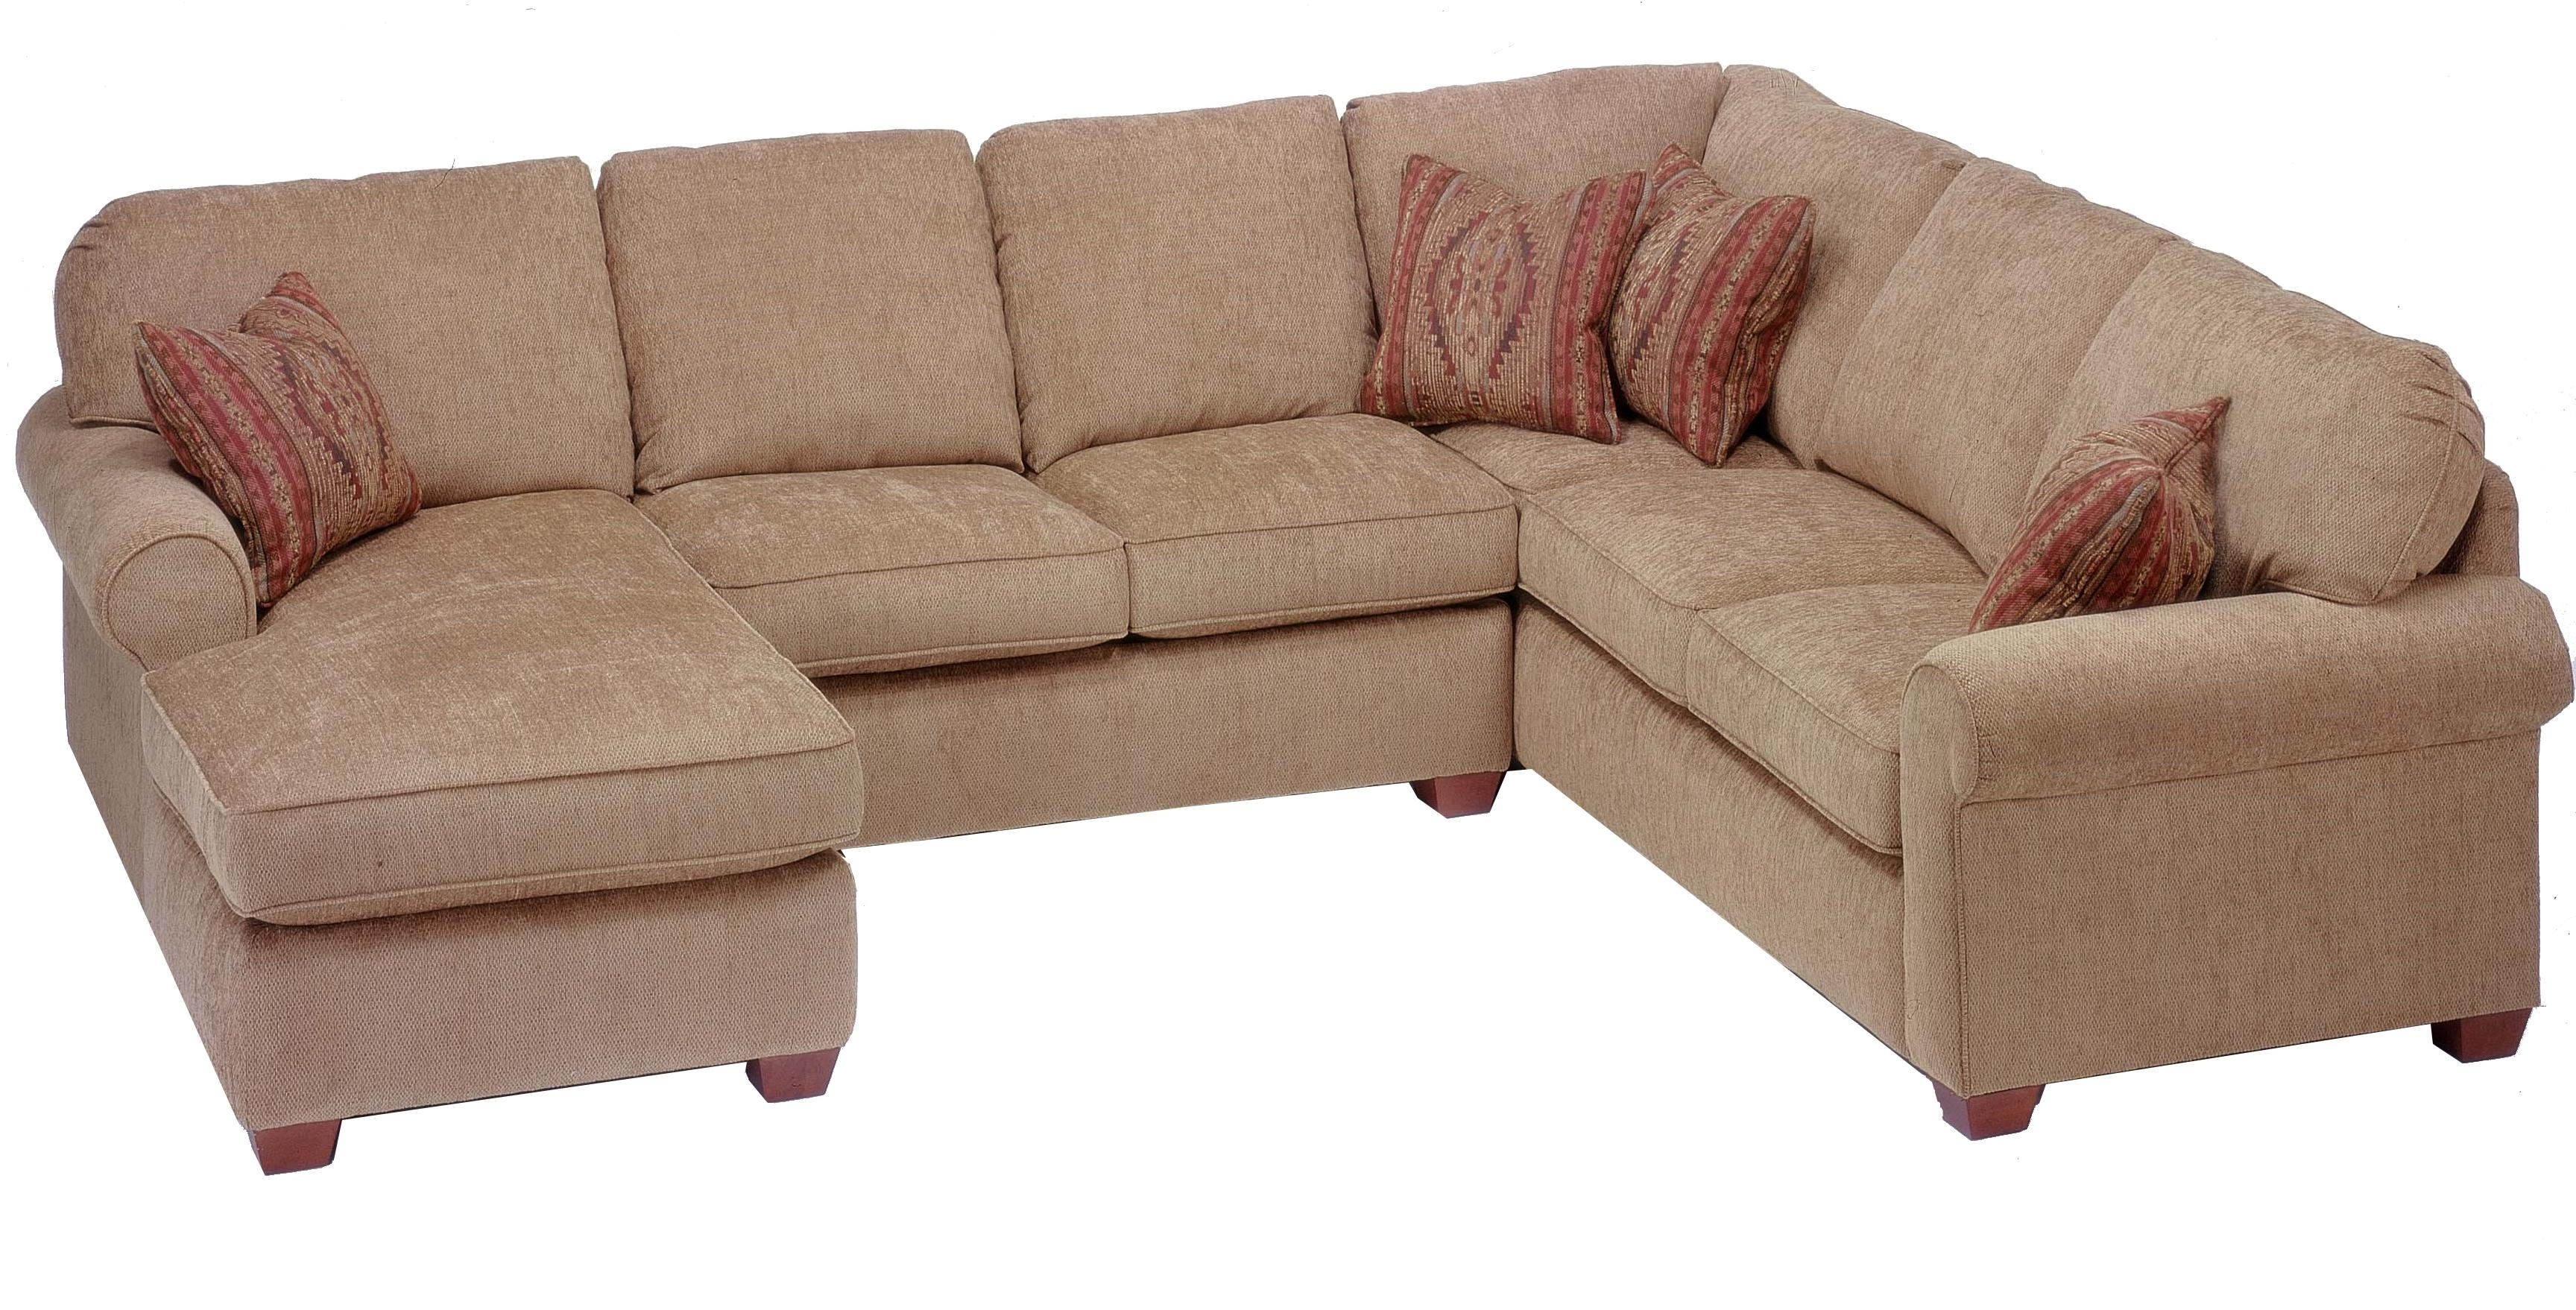 Flexsteel Thornton 3 Piece Sectional With Chaise - Ahfa - Sofa in Haven Blue Steel 3 Piece Sectionals (Image 12 of 30)